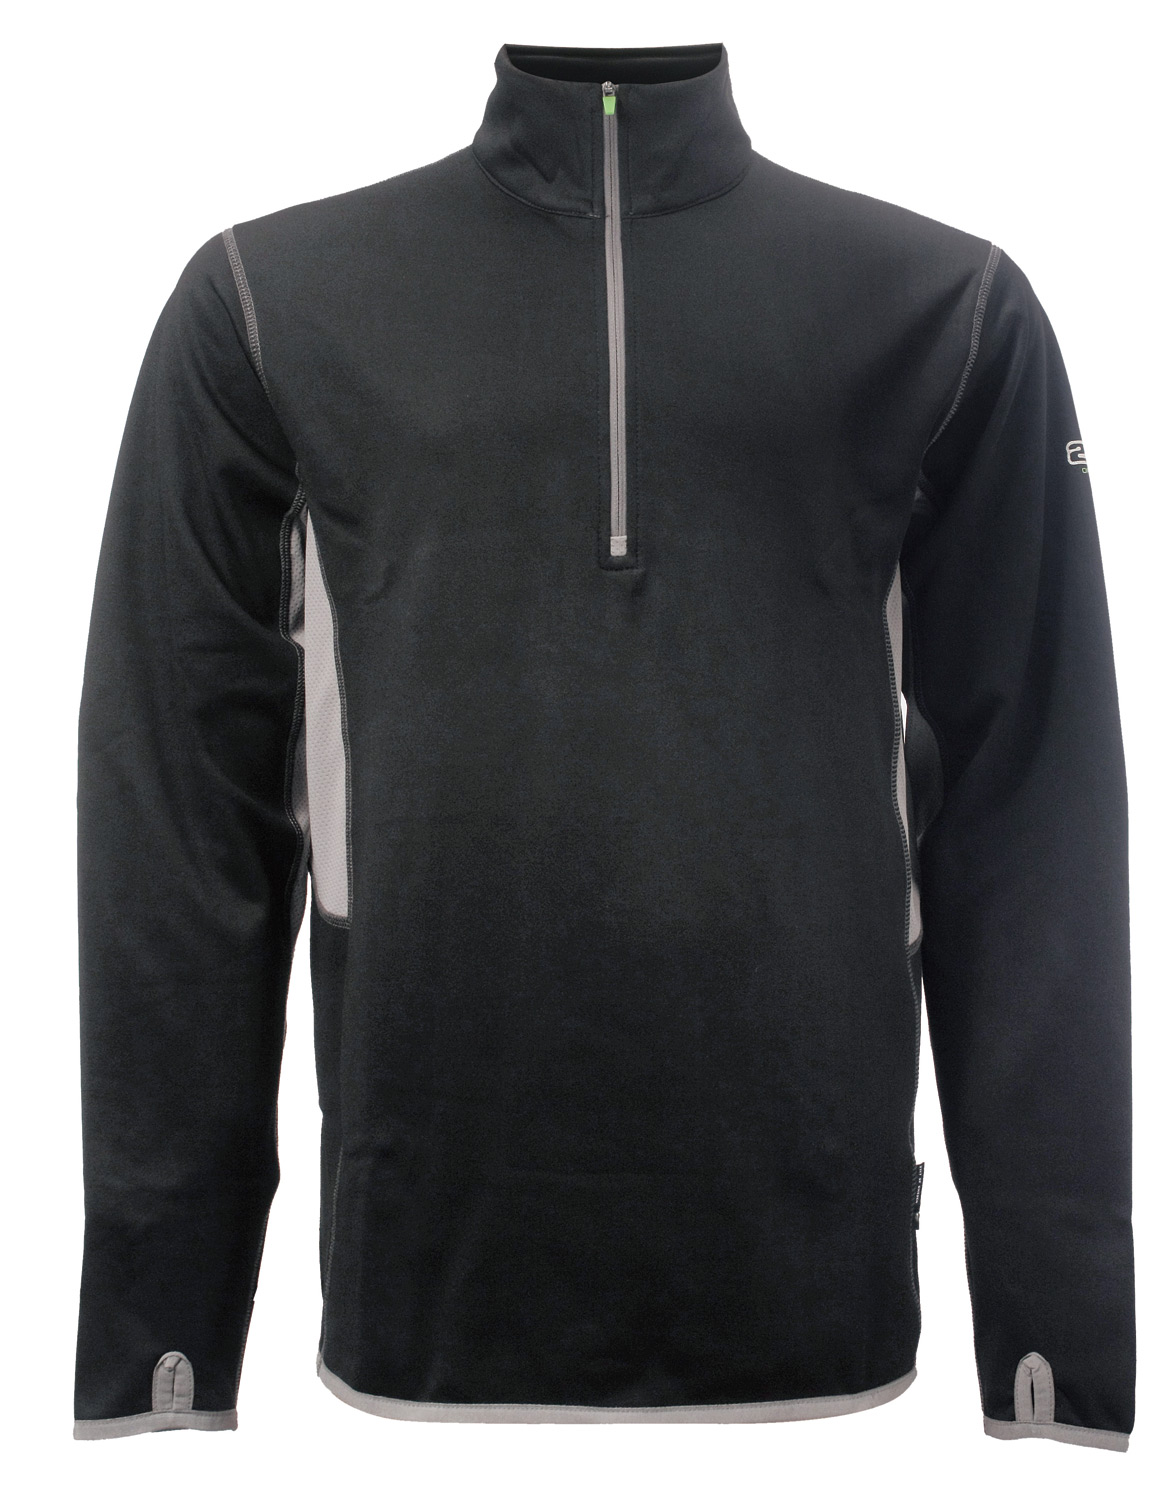 The Gotland Power fleece 1/4 zip top is the perfect top when you're not sure what the weather is going to do. Wear it as a 2nd layer over your favorite t-shirt or under your shell as you head out the door, either way this 4-way stretch ventilated top will keep you comfortable all day long. The sleeves are long enough equipped with thumb holes, giving you a built in comfort cuff for when you just don't need gloves but need a little something extra to keep the warm in and the cold out.Key Features of the 2117 Gotland Power 1/4 Zip Fleece: Powerfleece top with long sleeves and short zip Anit-pilling powerfleece 4-way stretch 1/2 zip Ventilation panels on key areas - $44.95